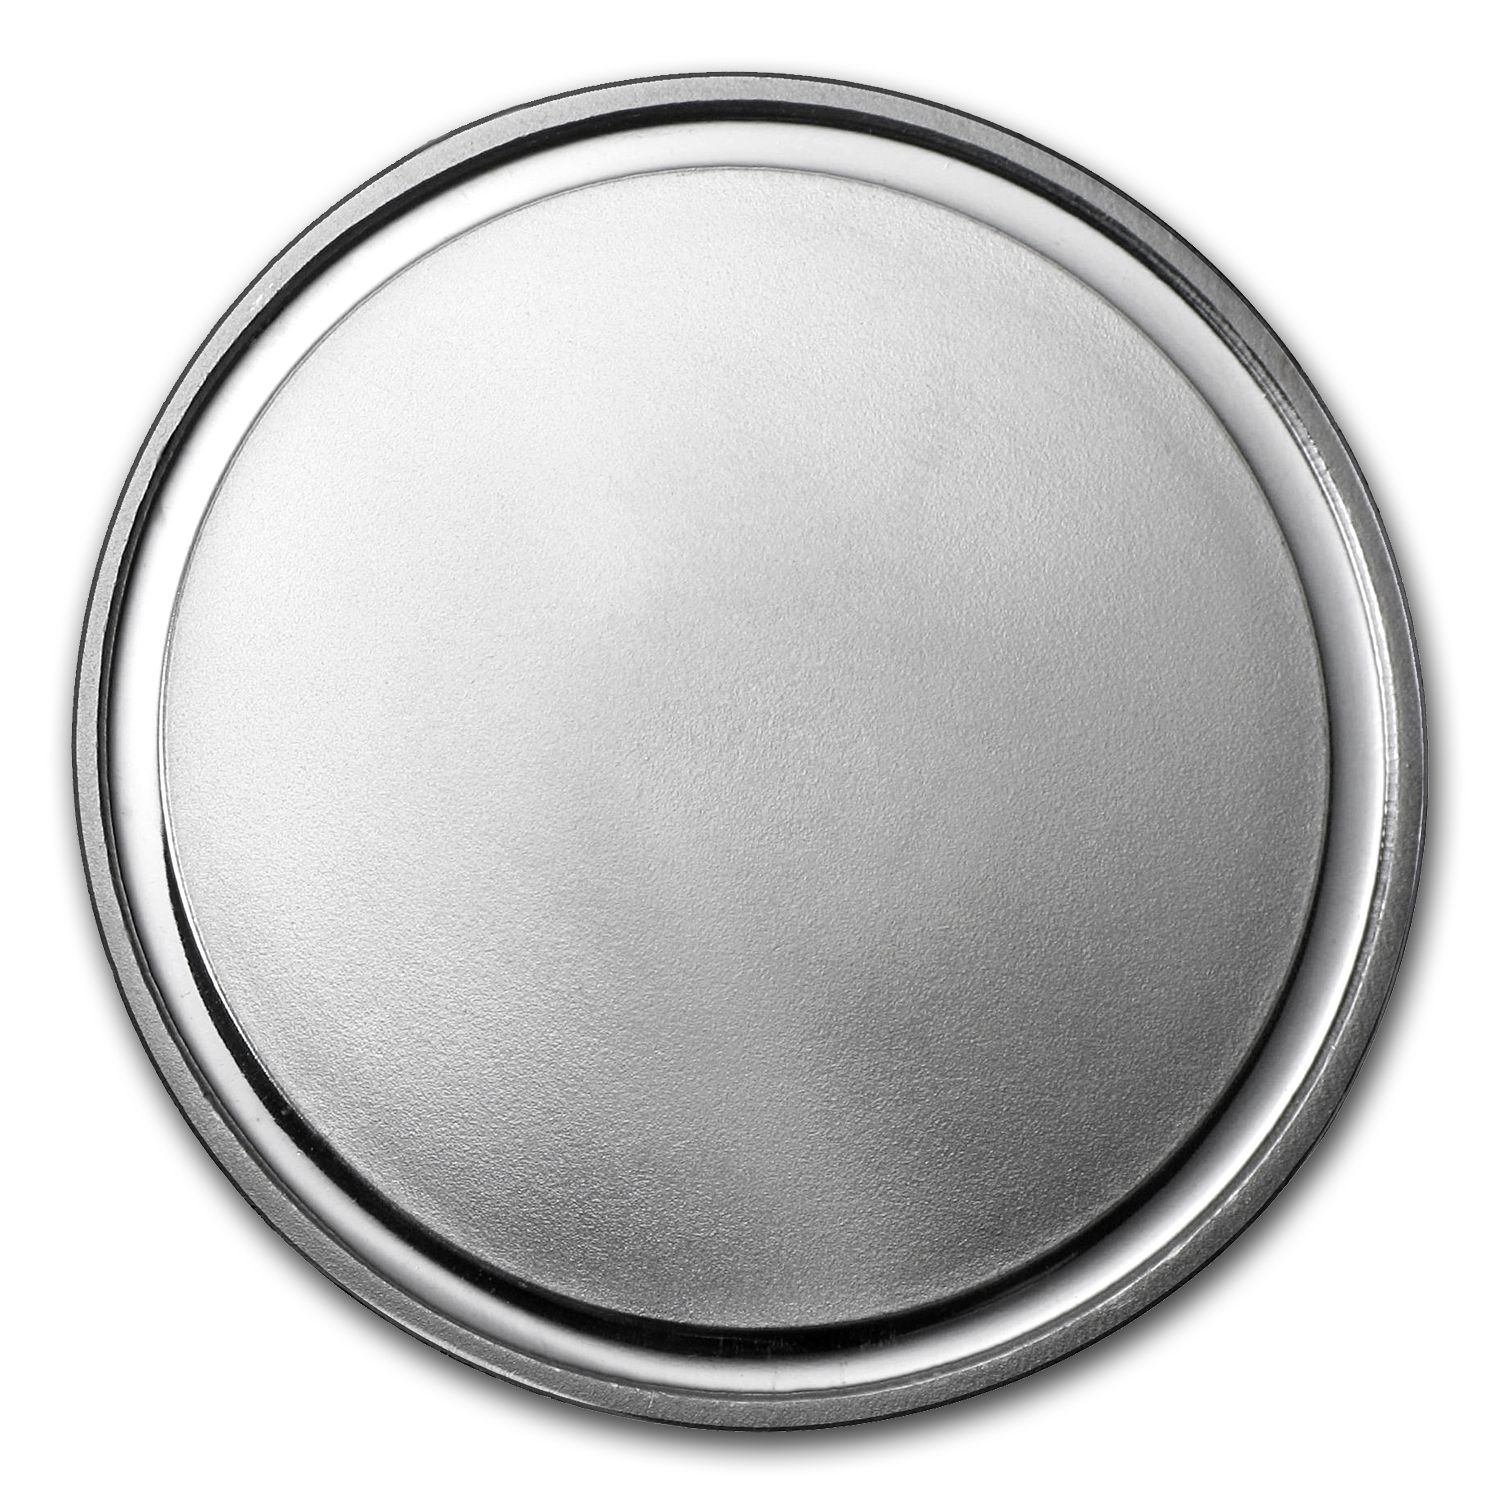 Gallery images and information: Blank Silver Coin